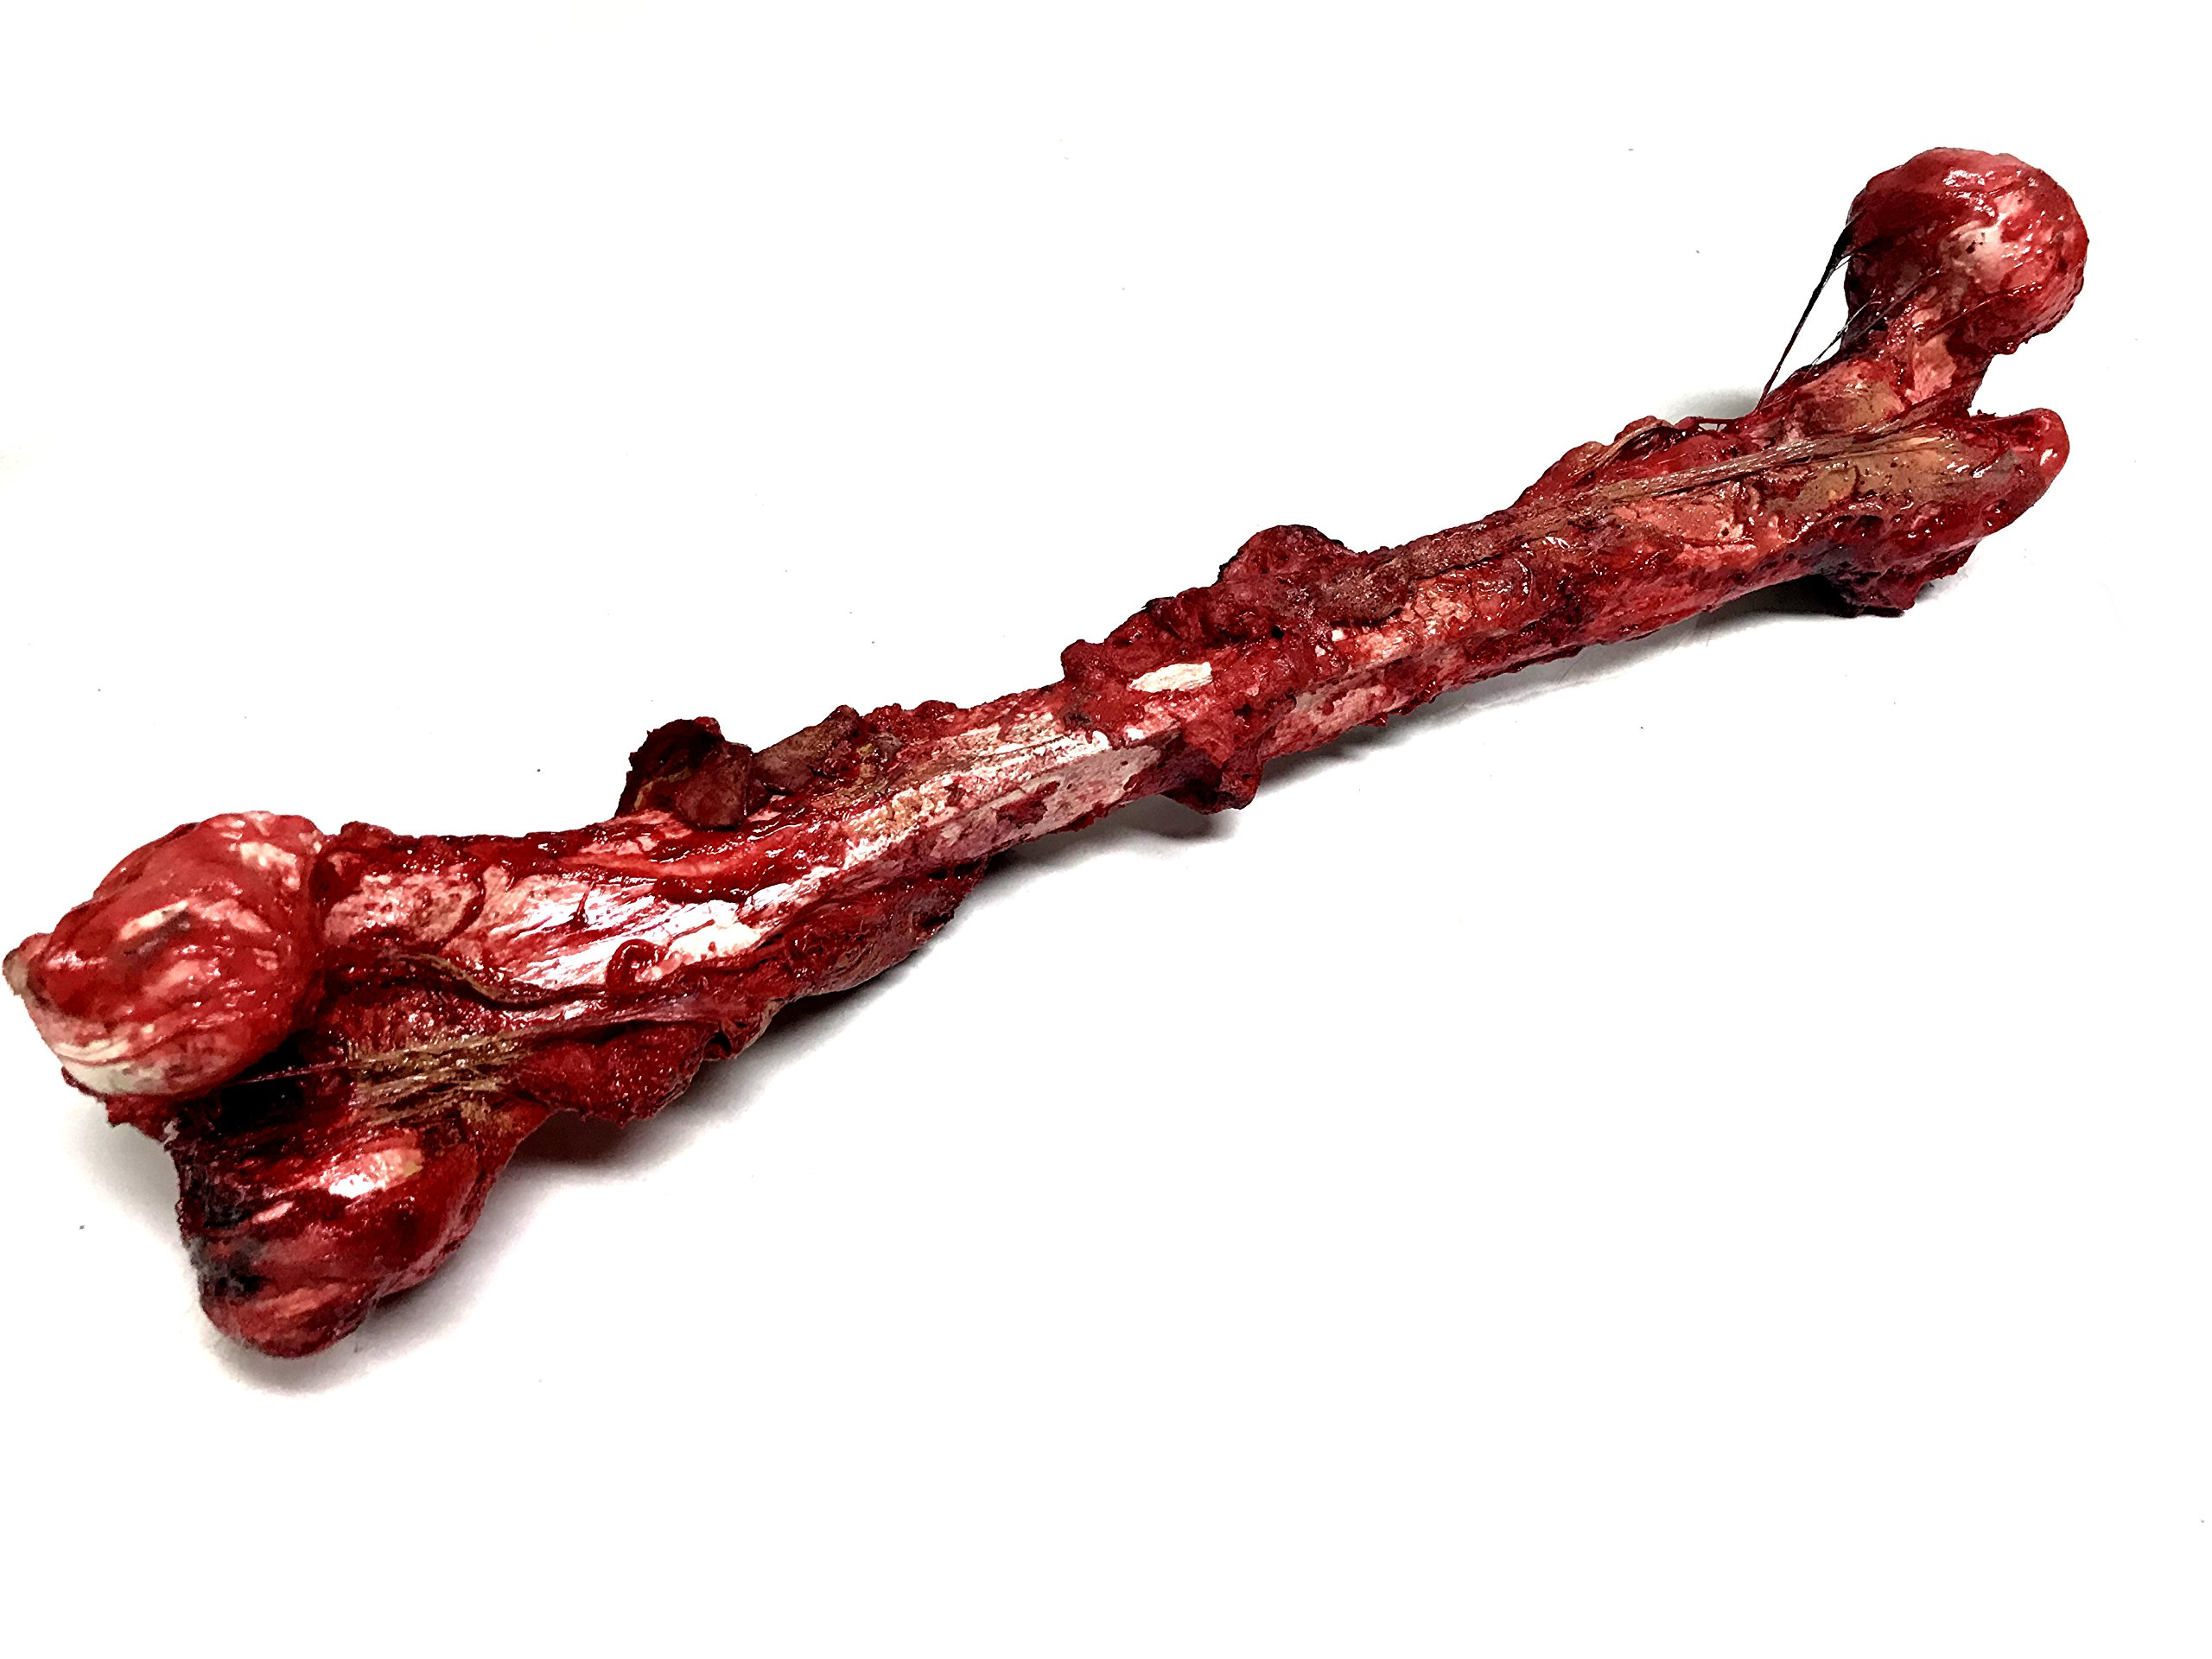 NewRuleFX Bloody, Grisly Femur Bone with Skin and Gore - Full Size FX Prop by NewRuleFX (Image #3)